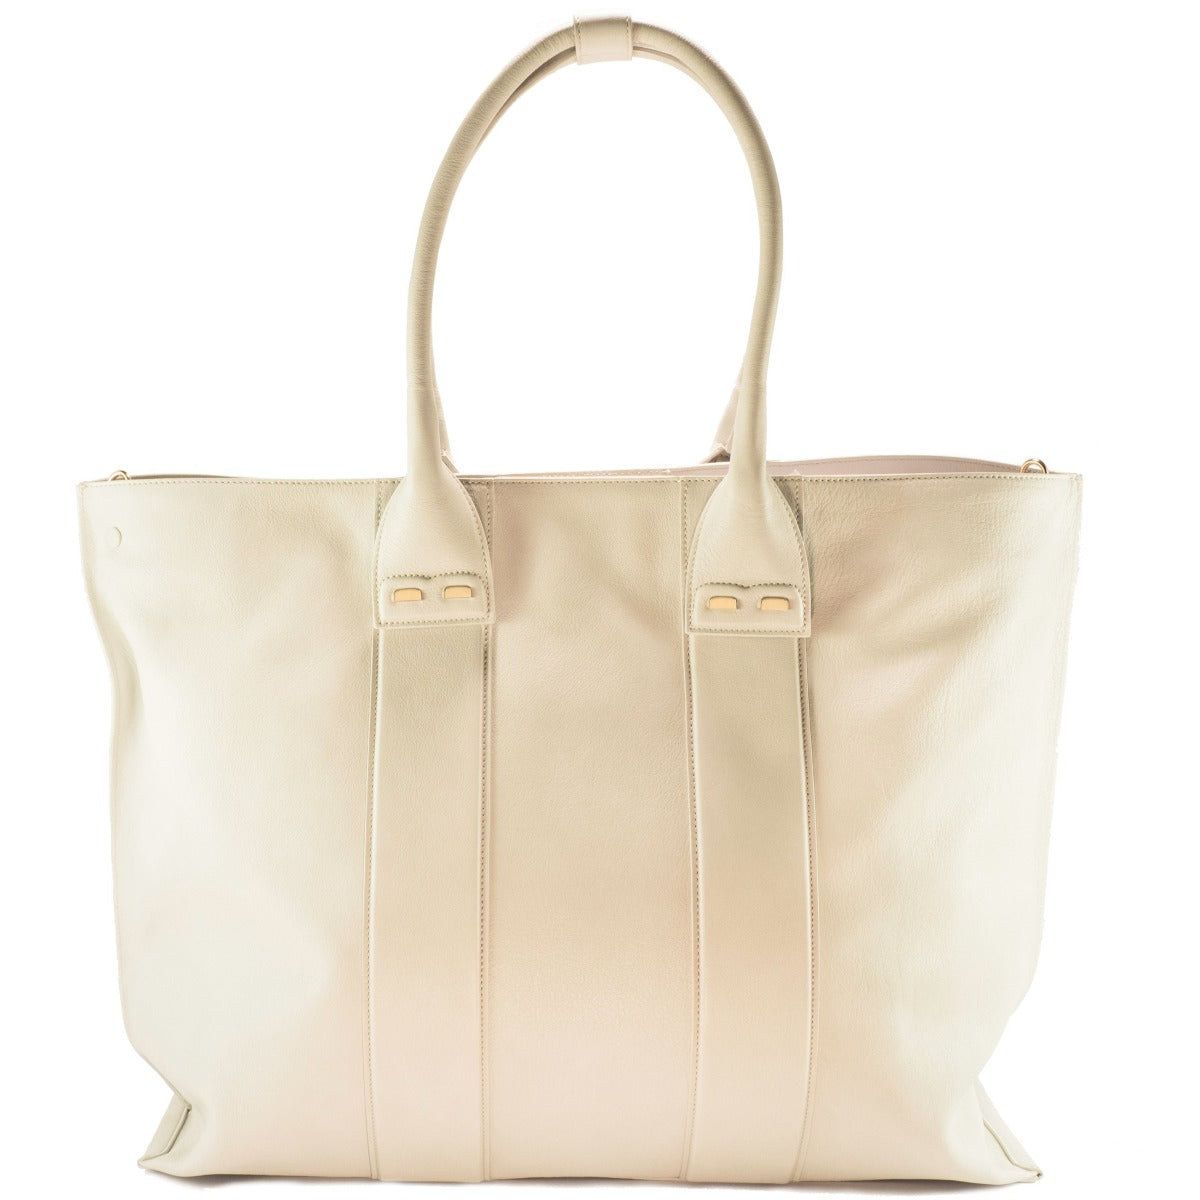 Stafford in Polvere - BENE Handbags